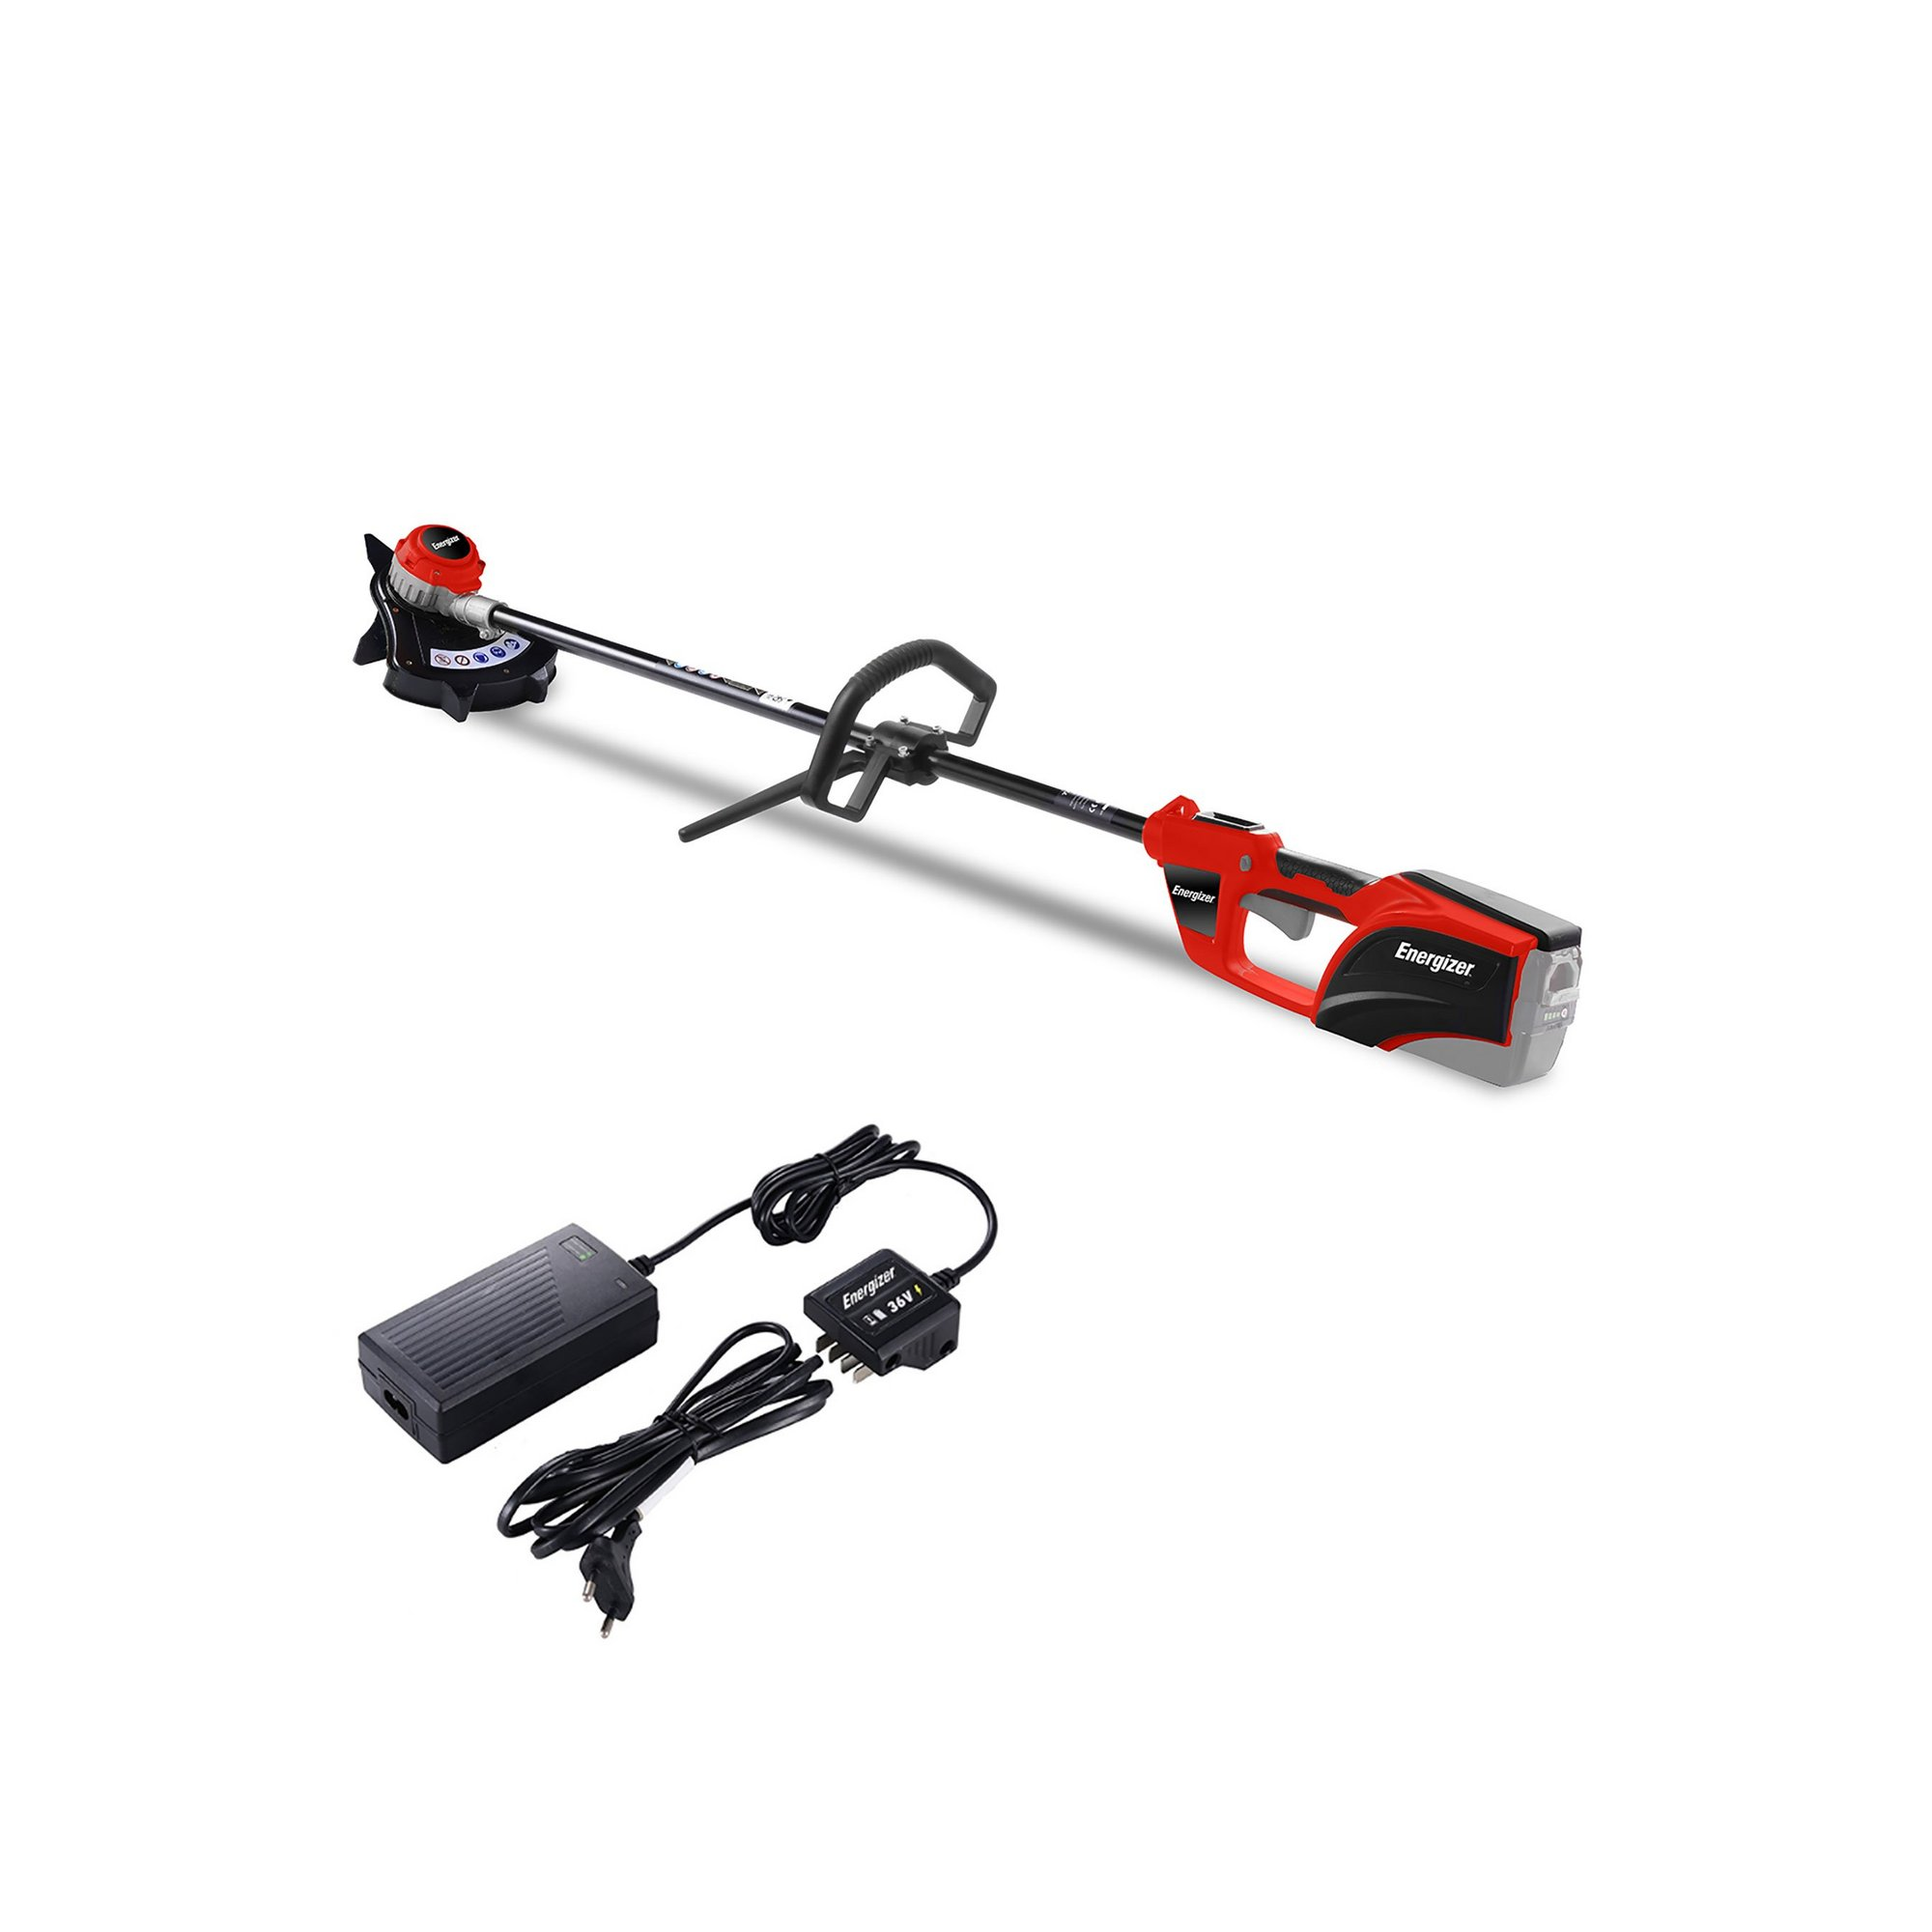 Image of Energizer Cordless Bush Cutter